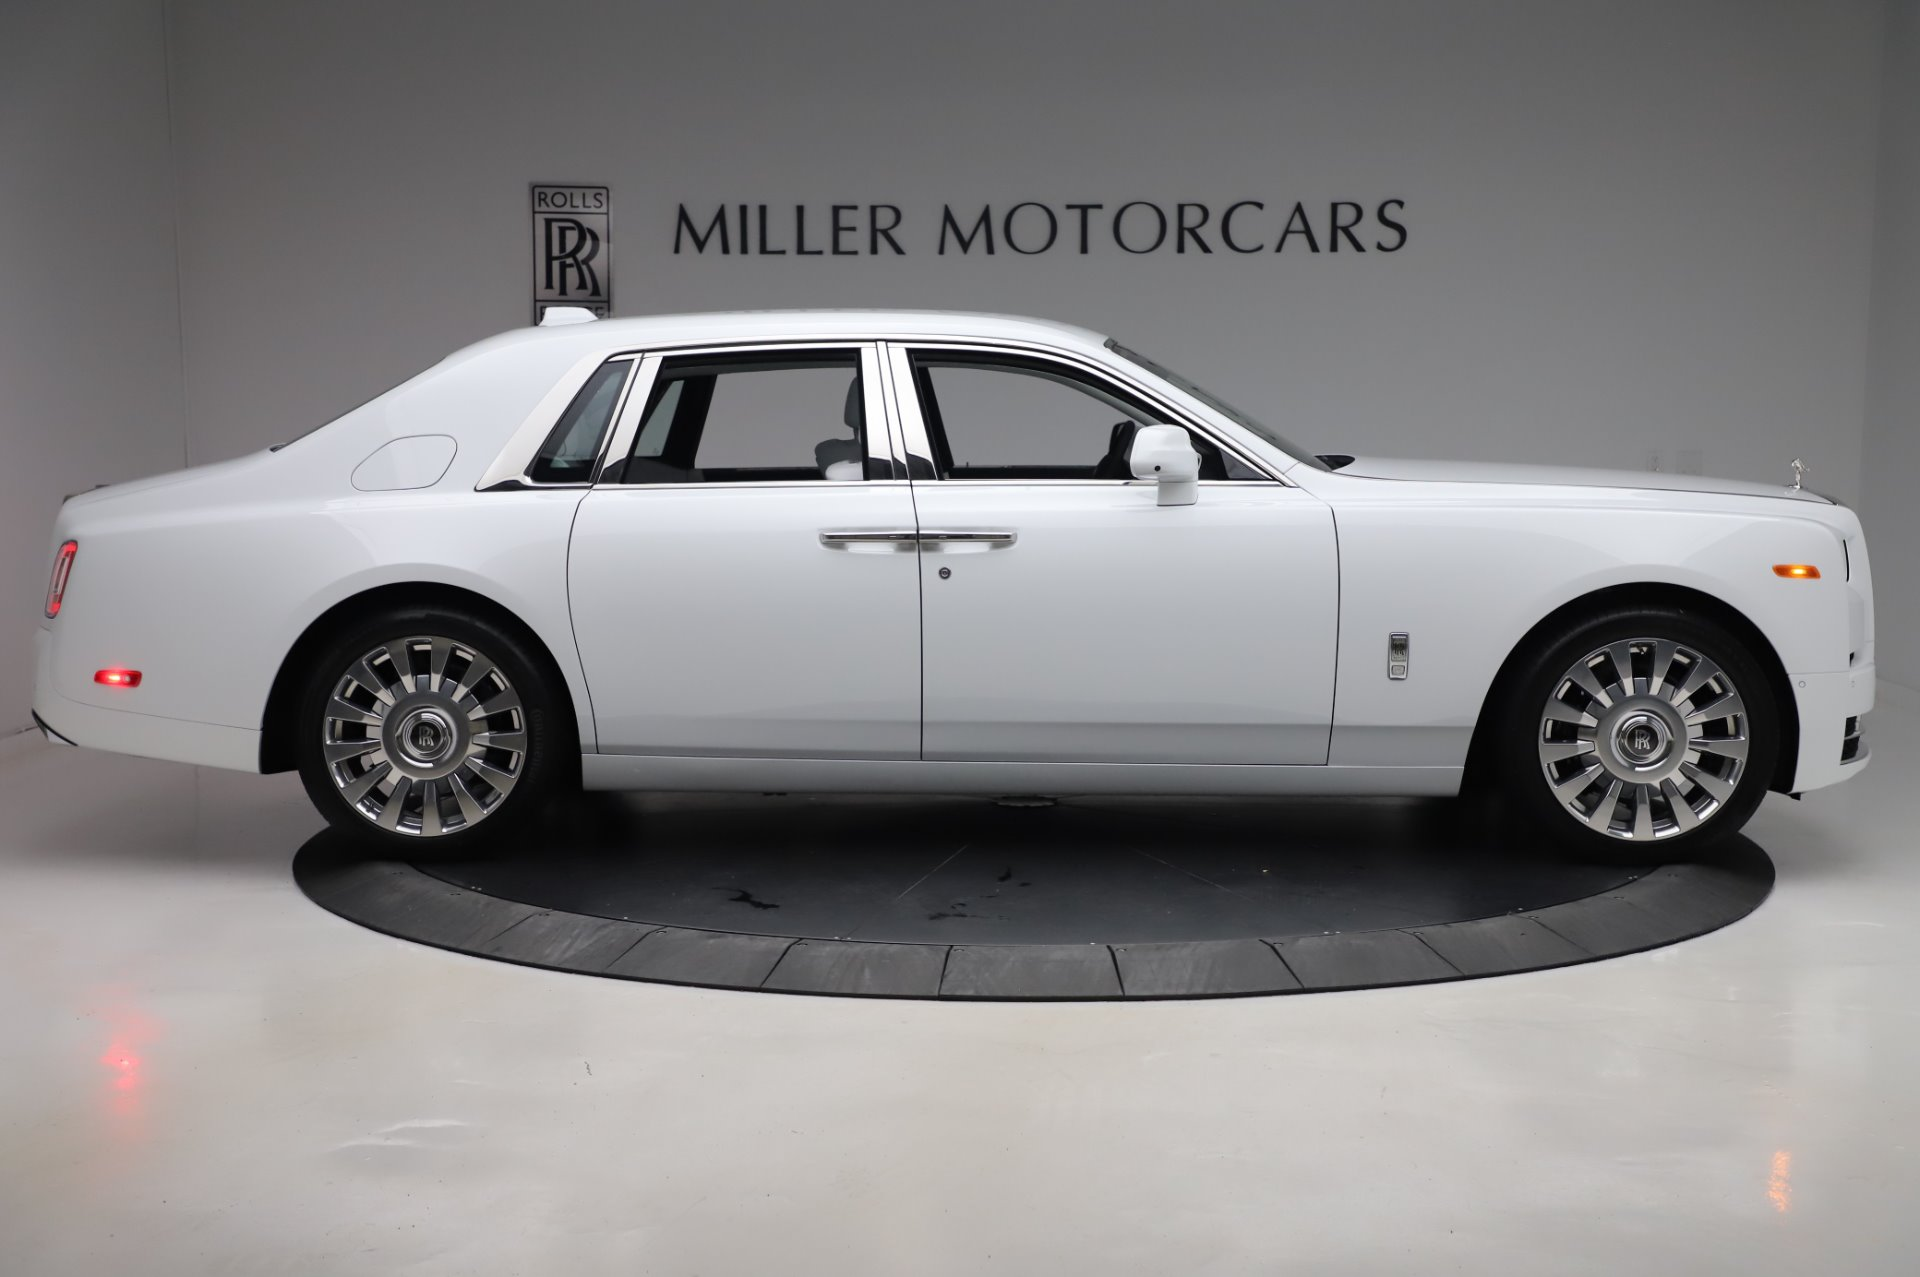 New 2020 Rolls Royce Phantom For Sale Miller Motorcars Stock R537